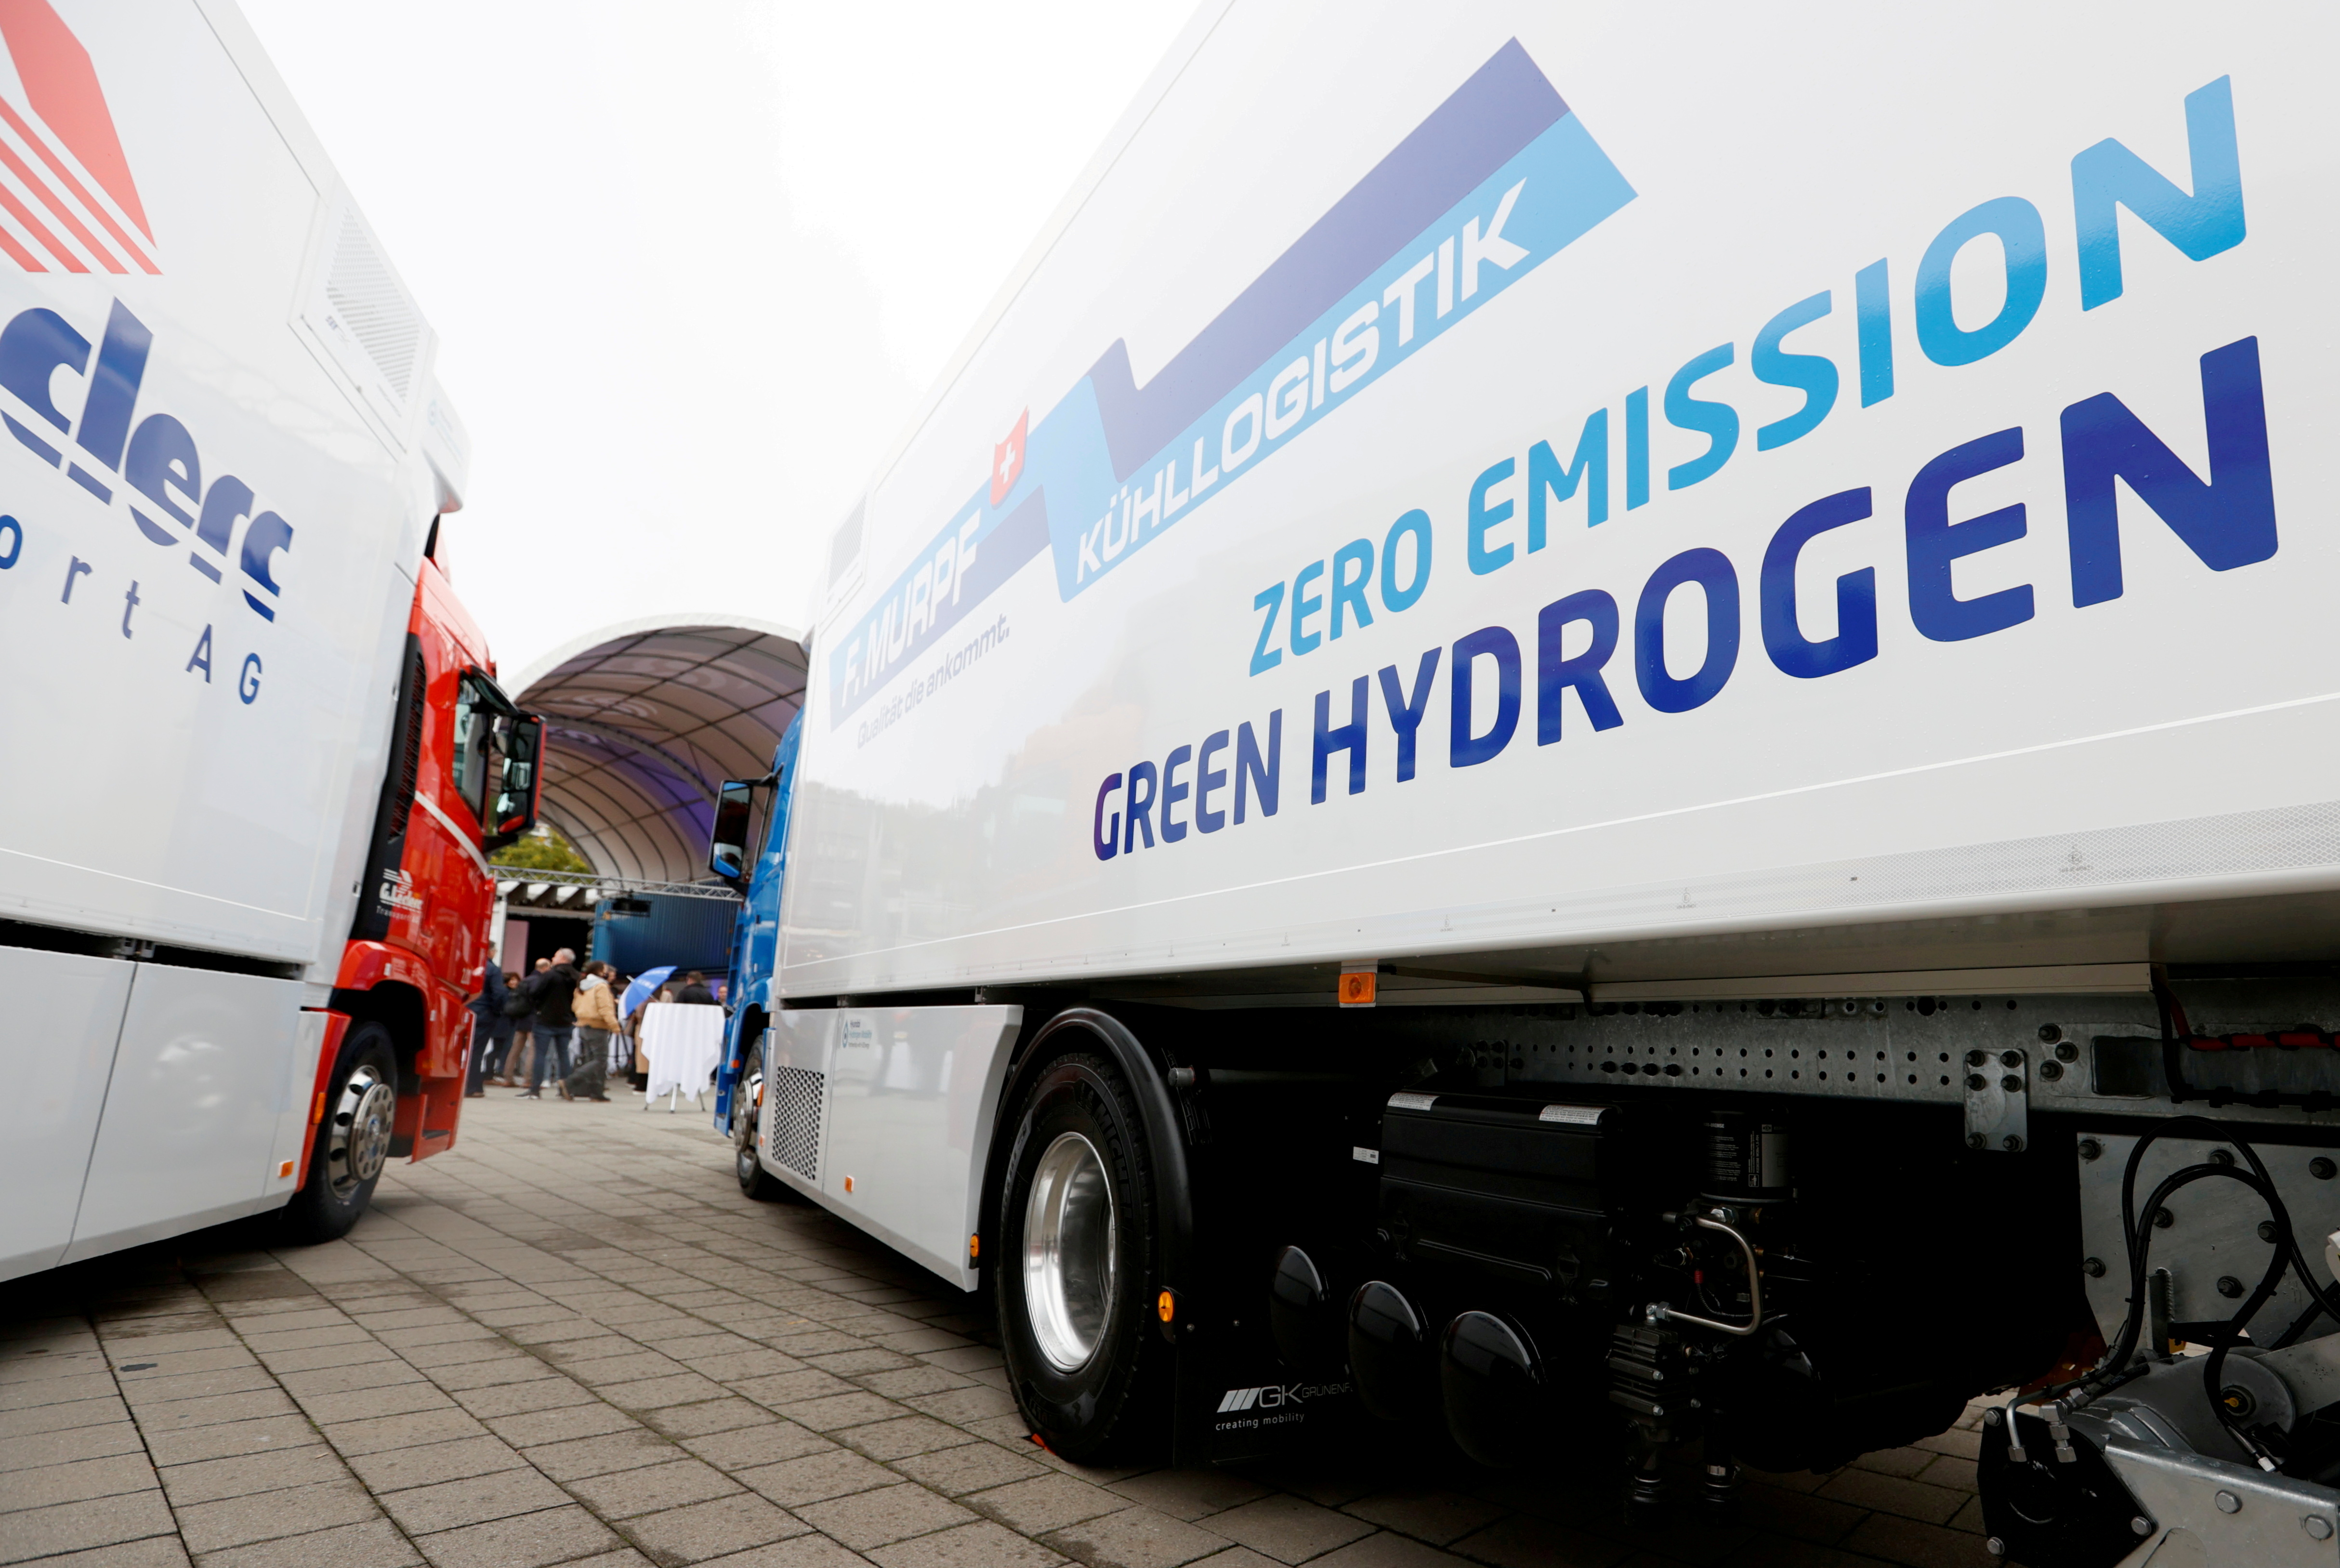 A new hydrogen fuel cell truck made by Hyundai is pictured at the Verkehrshaus Luzern (Swiss Museum of Transport) in Luzern, Switzerland October 7, 2020. REUTERS/Denis Balibouse